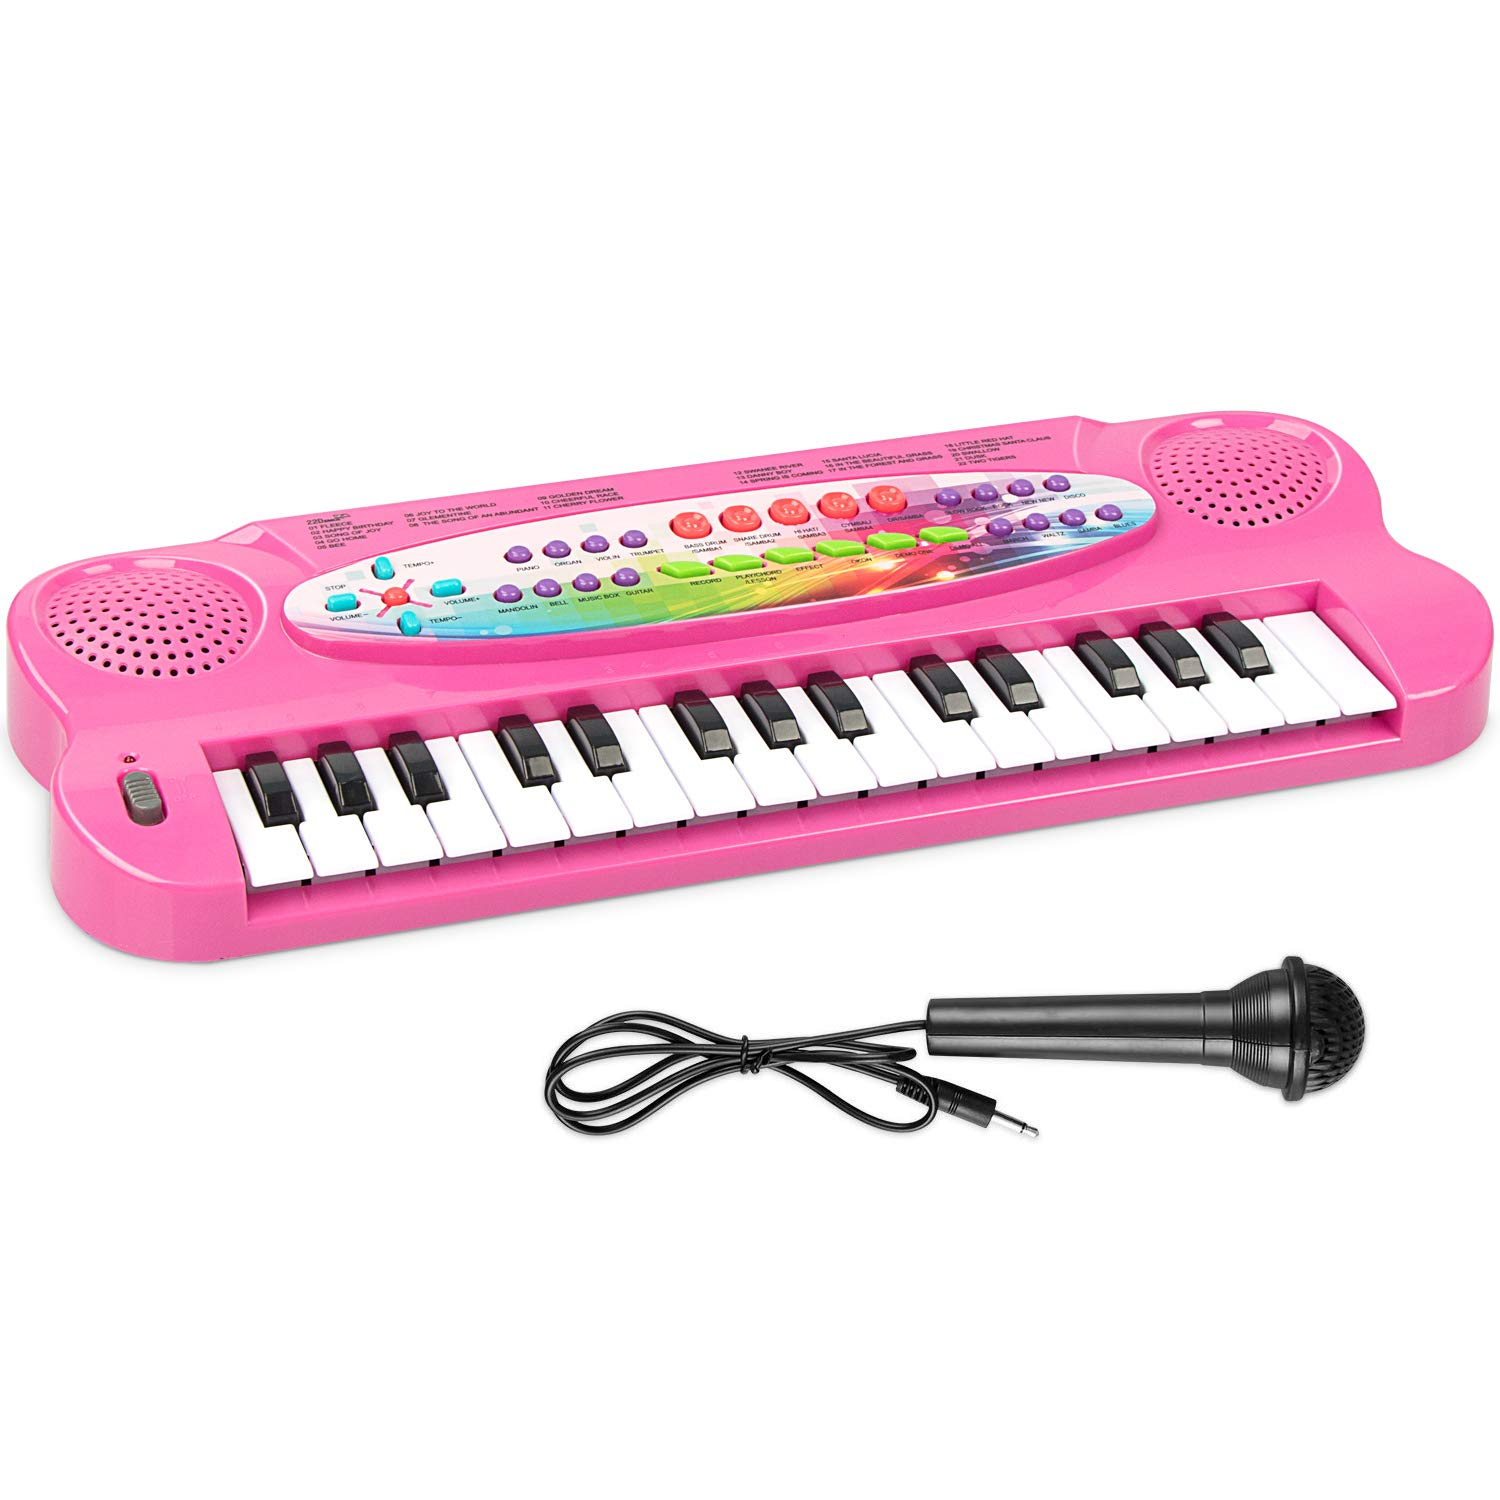 AIMEDYOU Kids Piano Keyboard 32 Keys Portable Electronic Musical Instrument Multi-Function Keyboard Teaching Toys Birthday Christmas Day Gifts for Kids (Pink) by AIMEDYOU